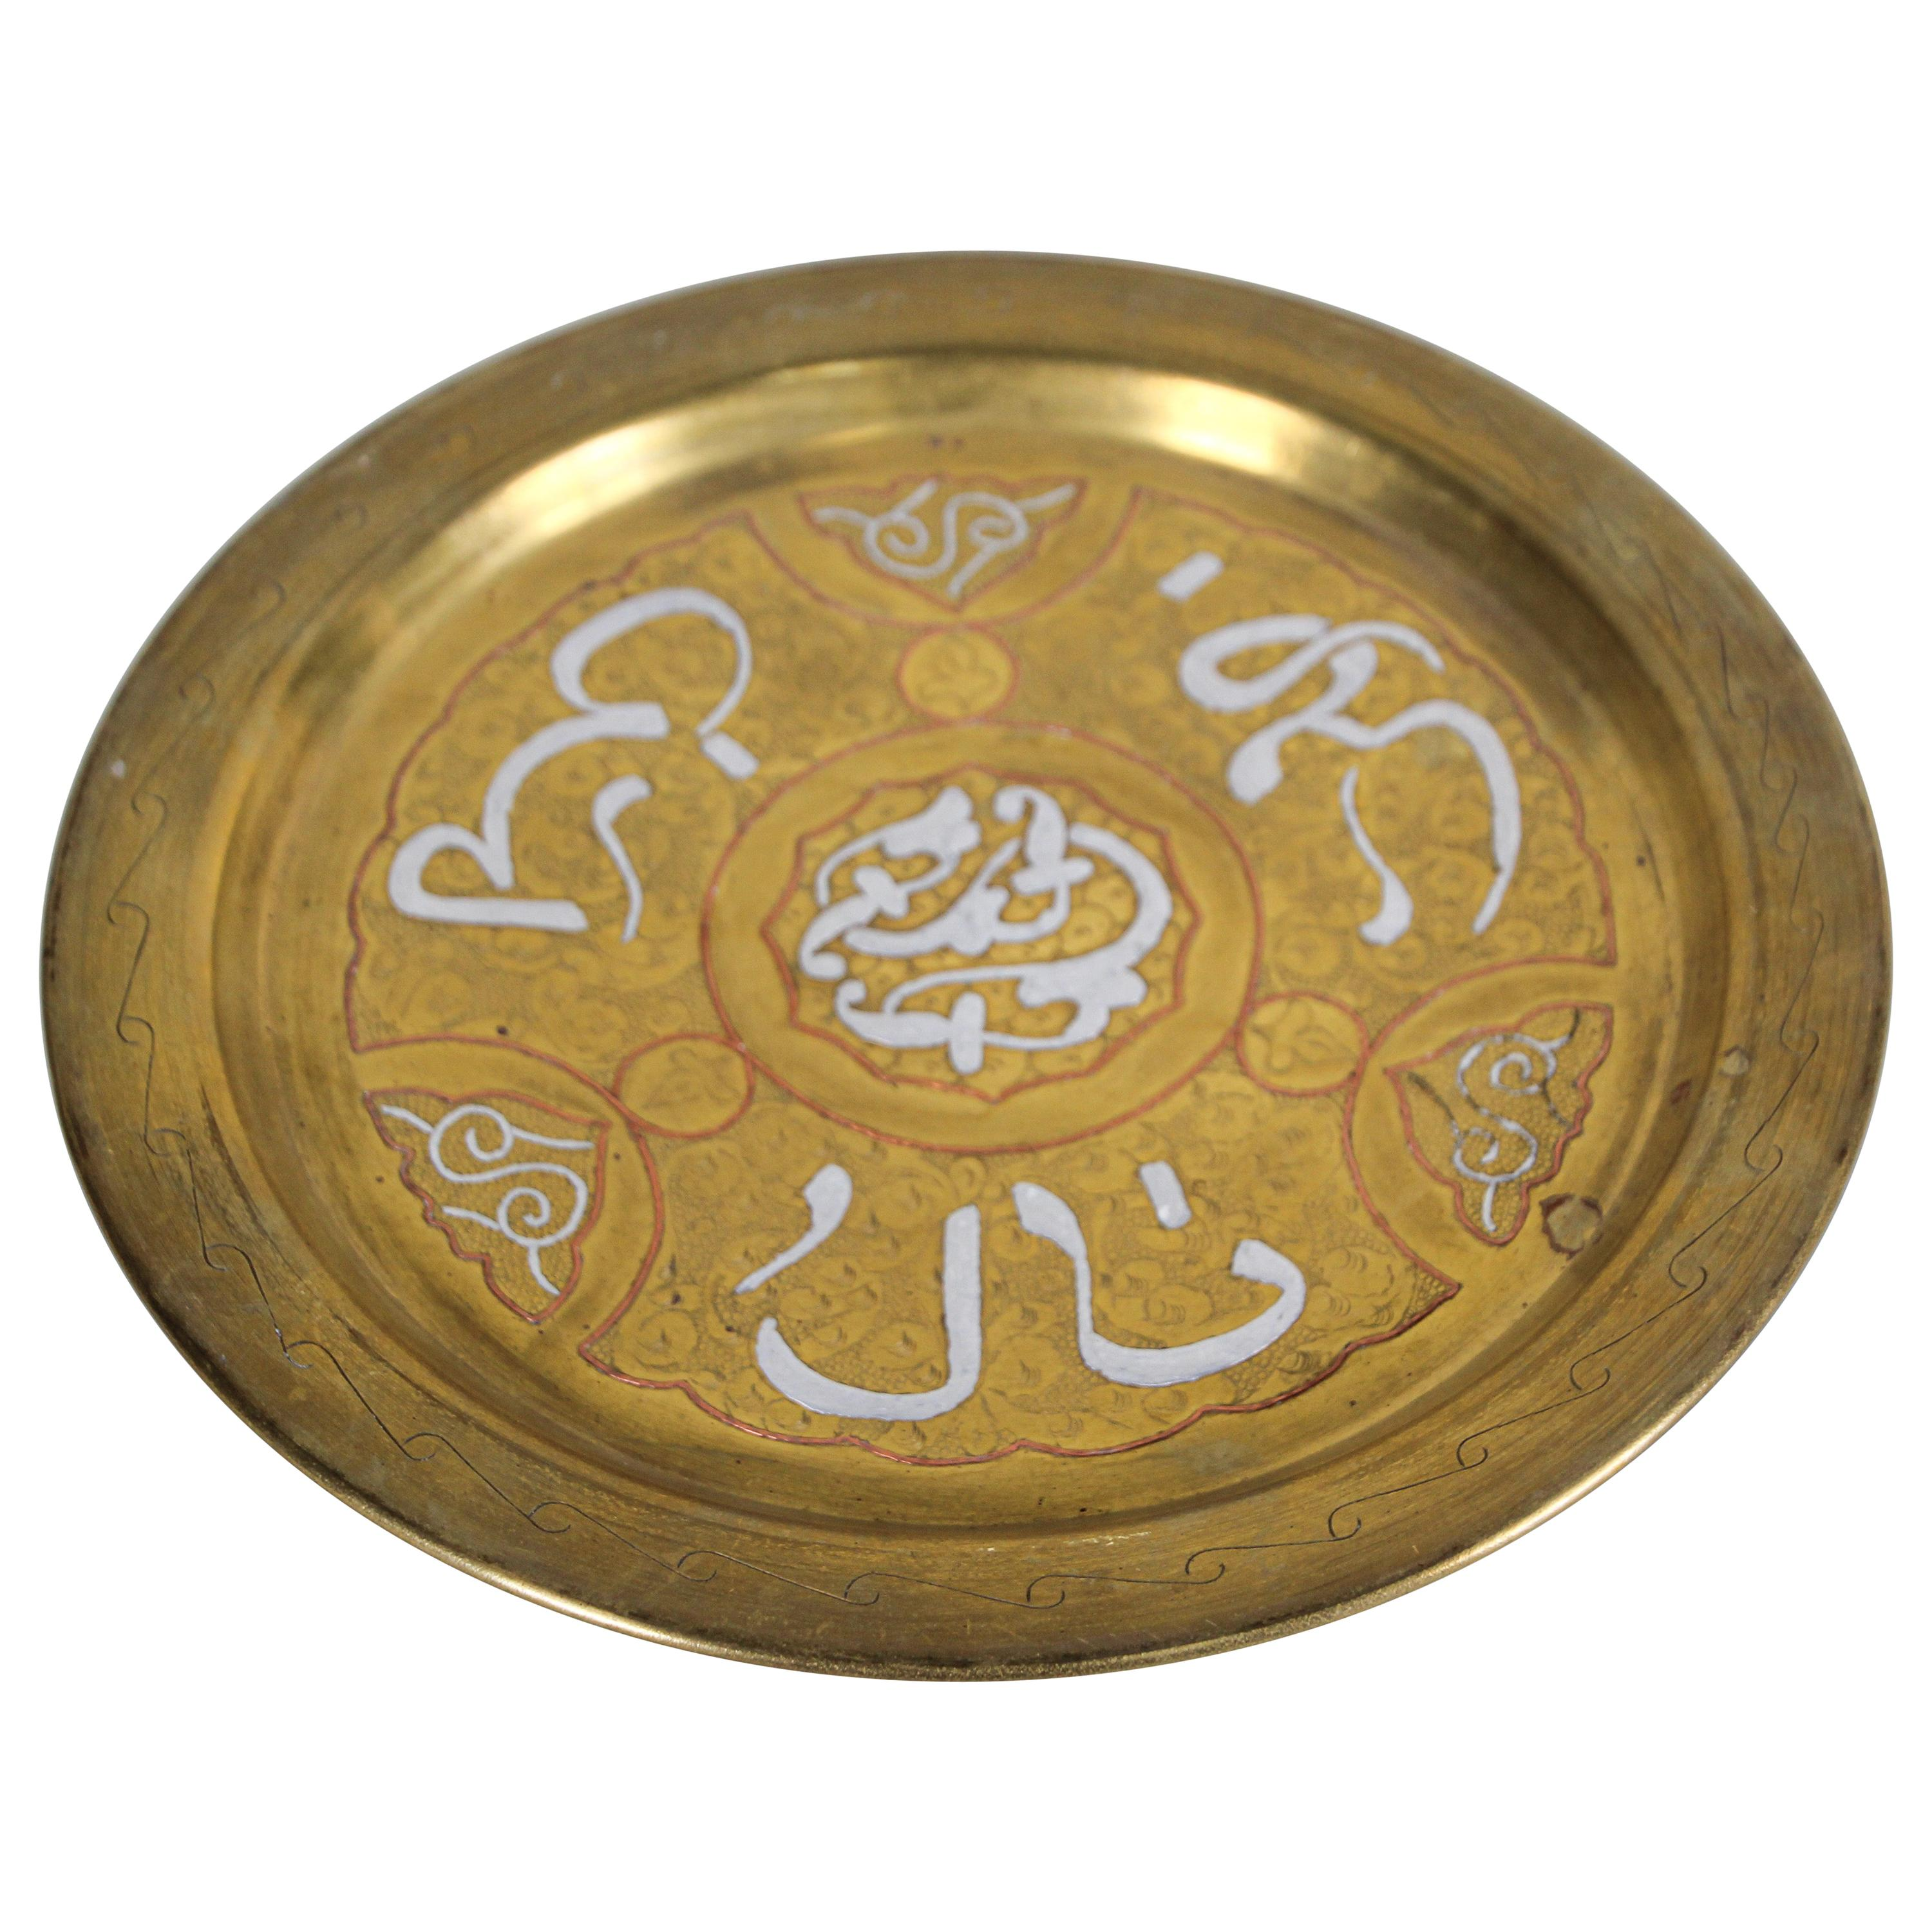 Middle Eastern Egyptian Tray Inlaid with Islamic Writing in Silver